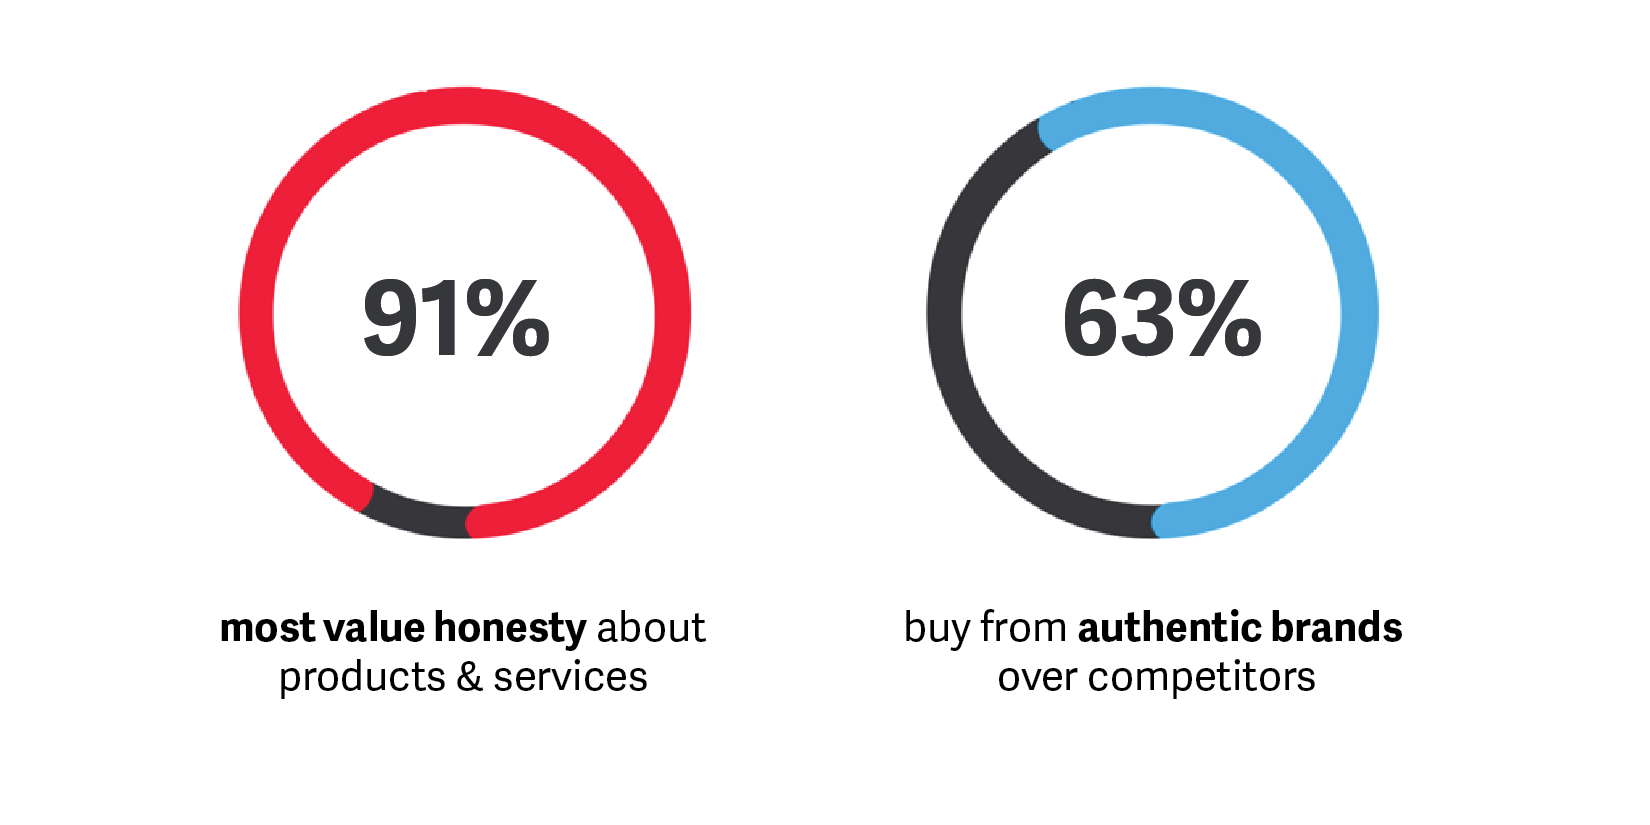 User-generated content is authentic